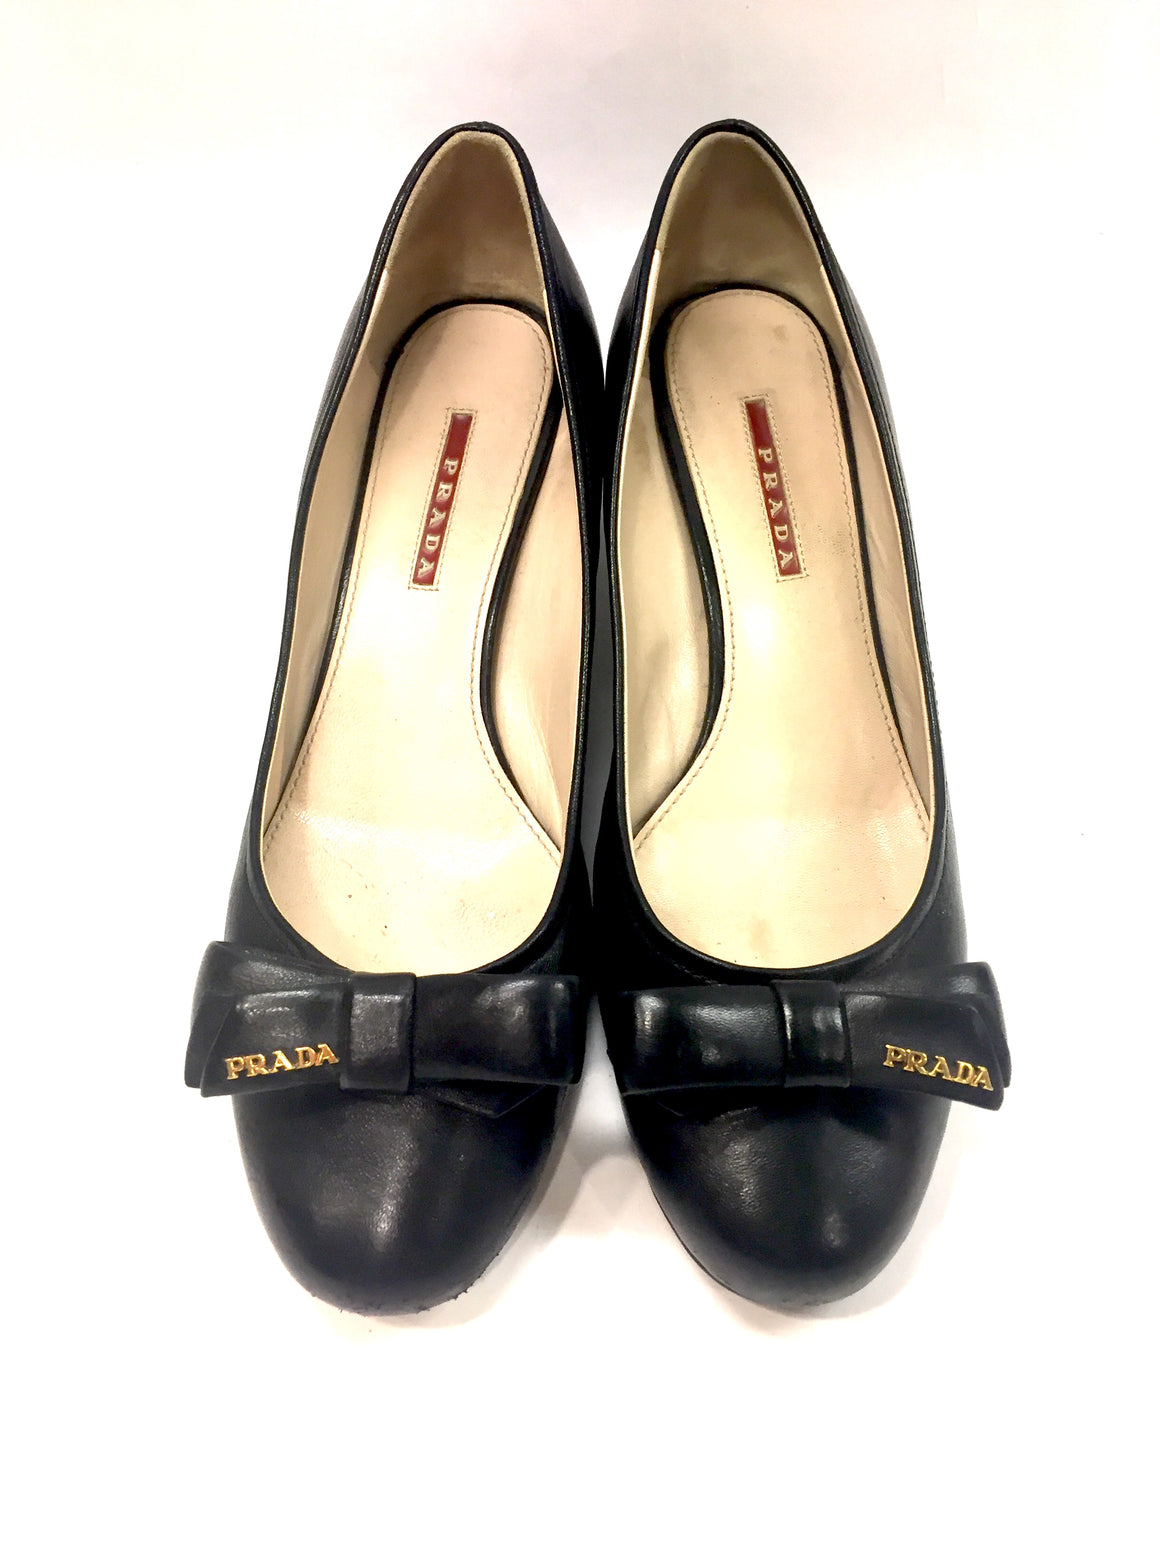 PRADA Black Leather Logo Bow Block-Heel Ballet Pumps Shoes Sz40